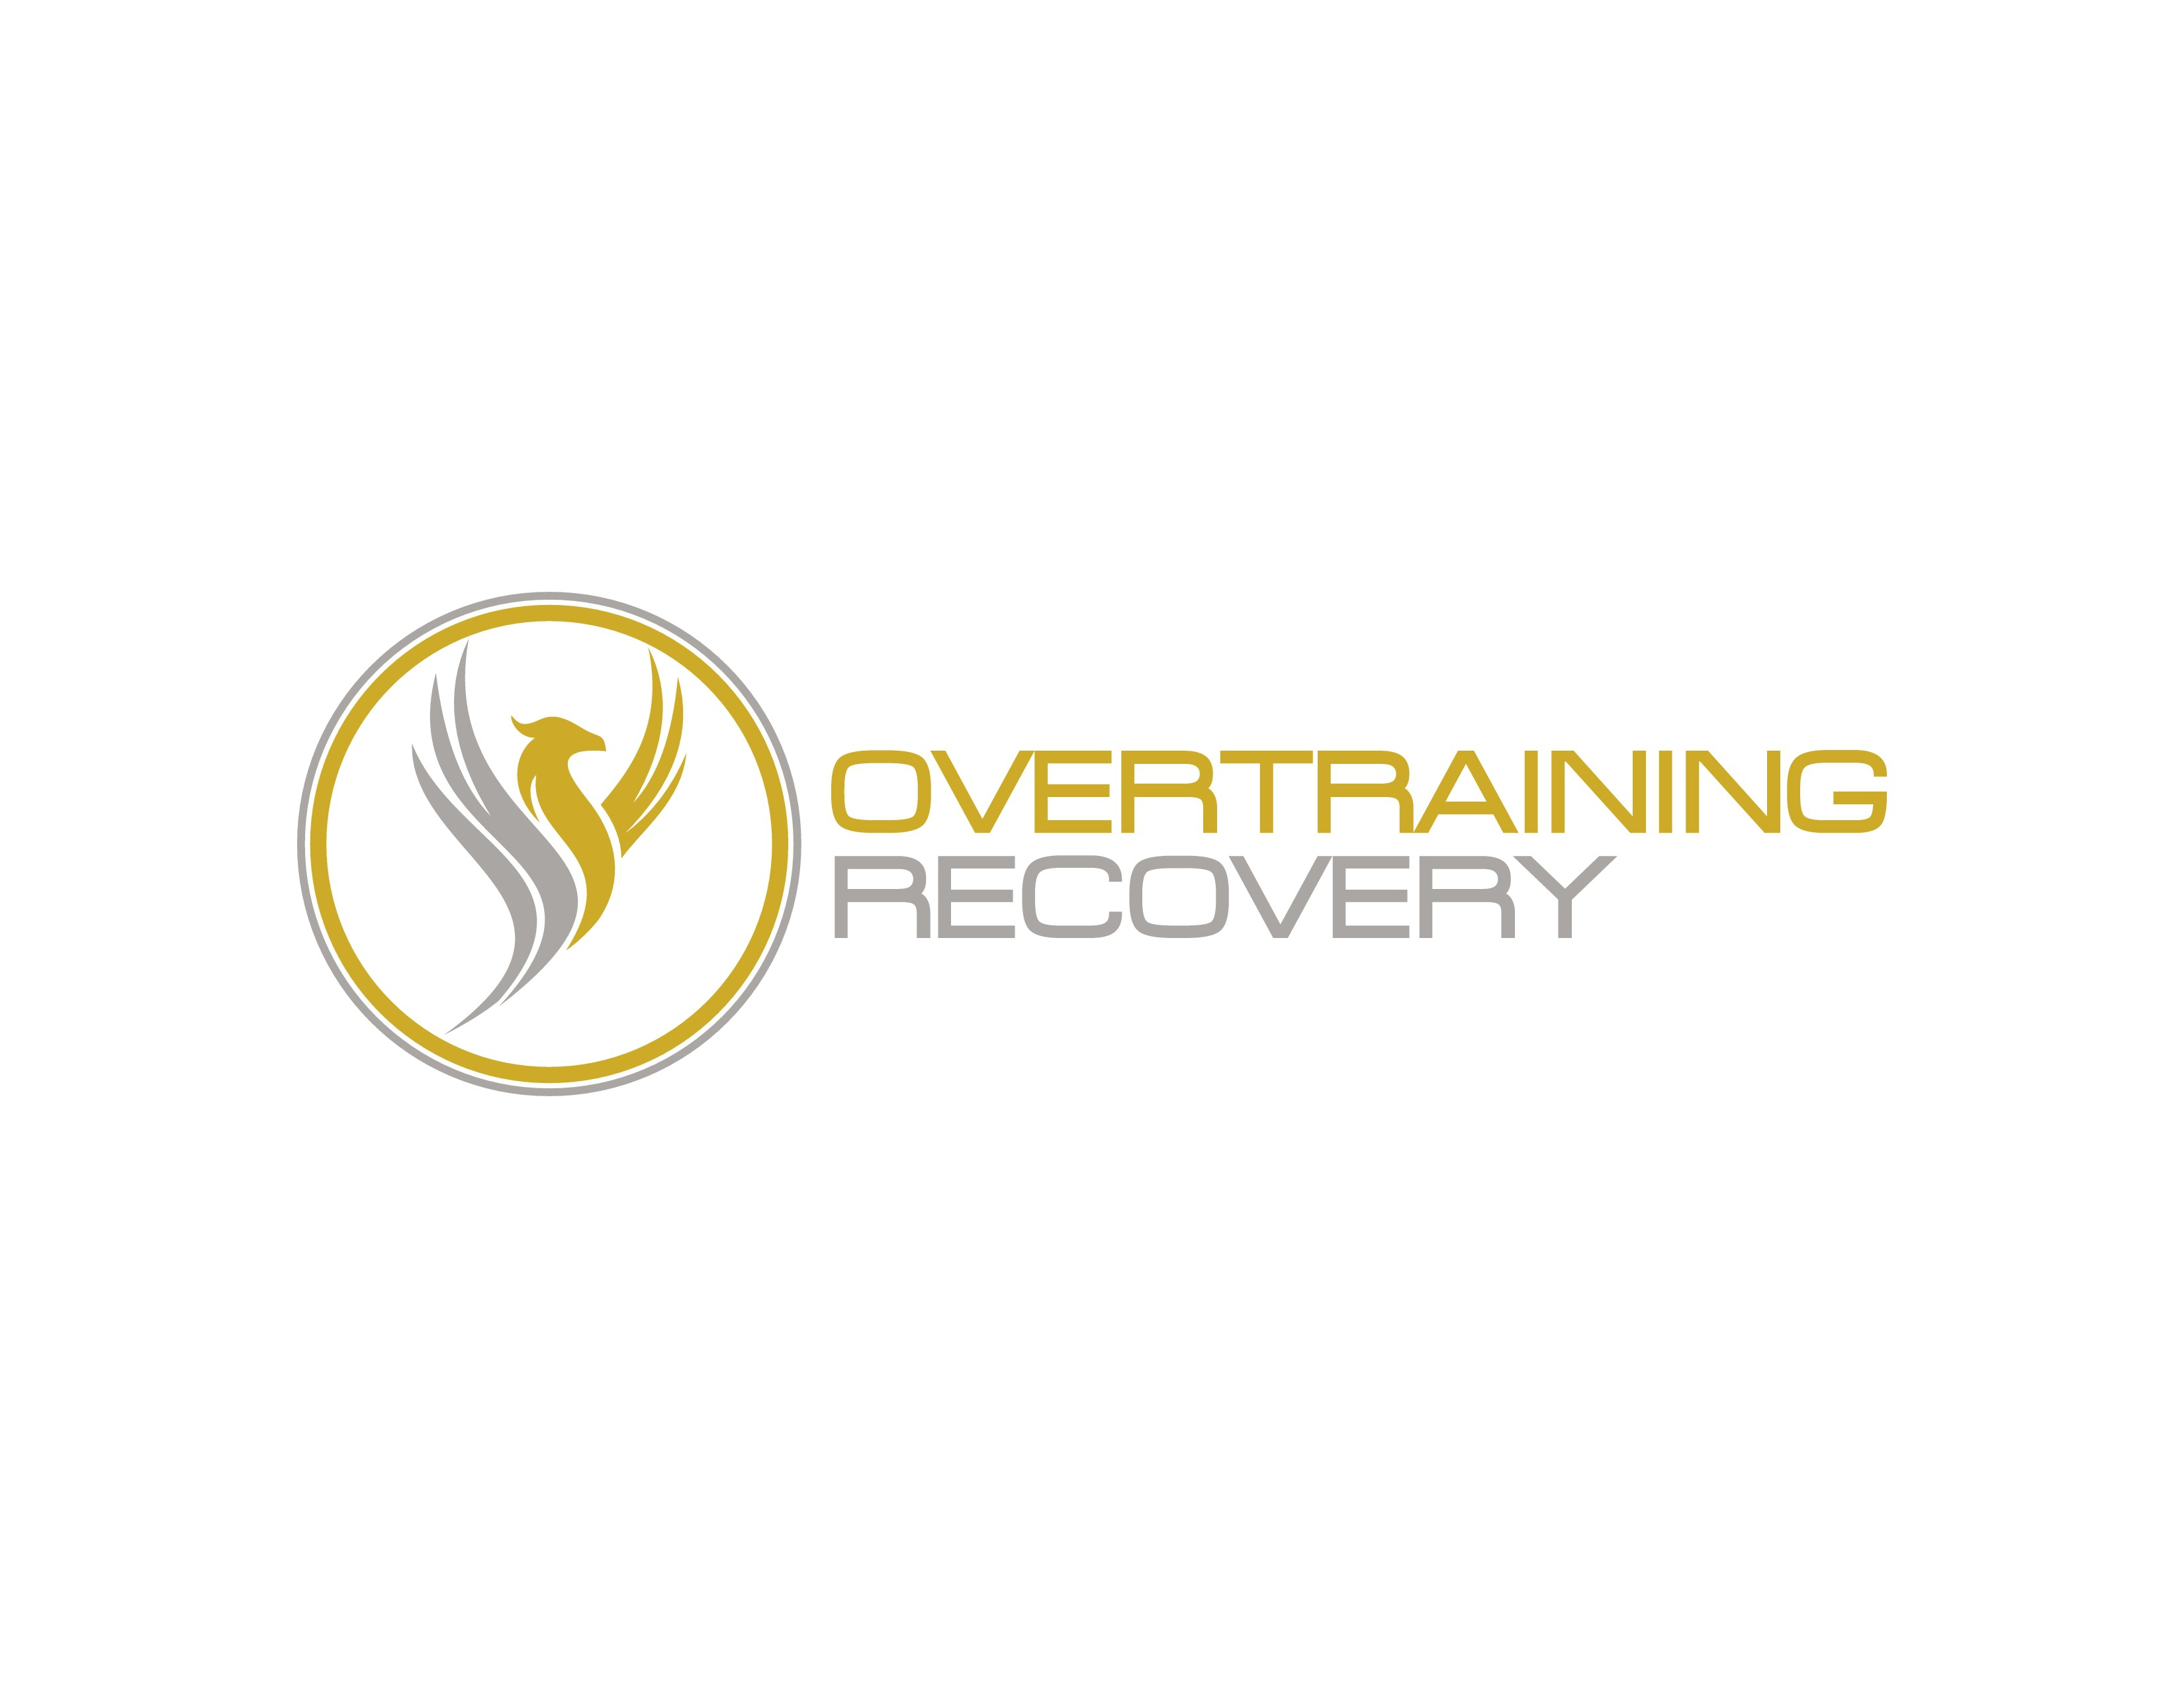 Overtraining Recovery